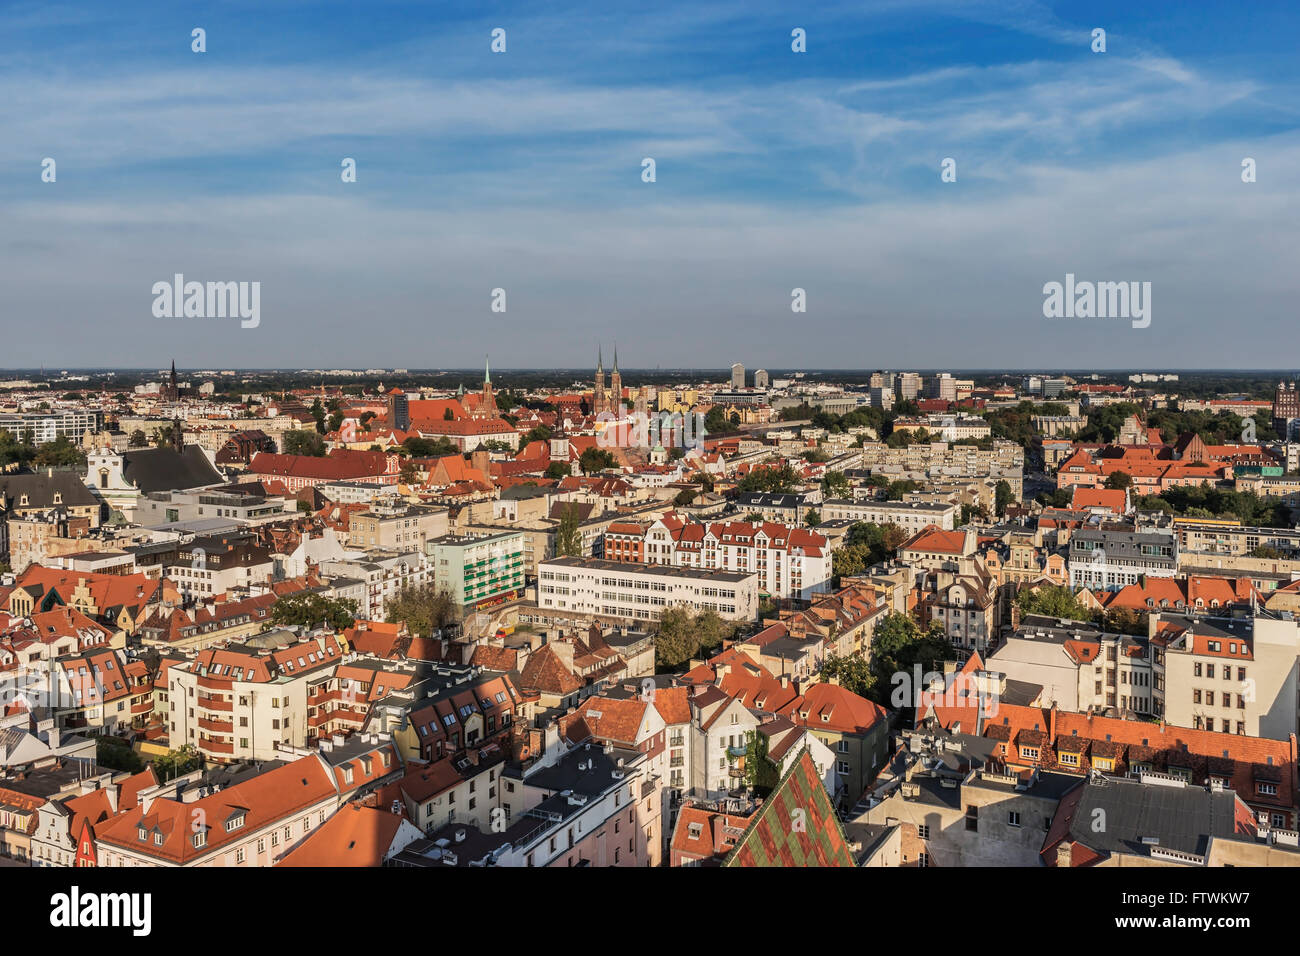 View from the tower of the St. Elizabeth Church on the city of Wroclaw, Voivodeship Lower Silesia, Poland, Europe - Stock Image